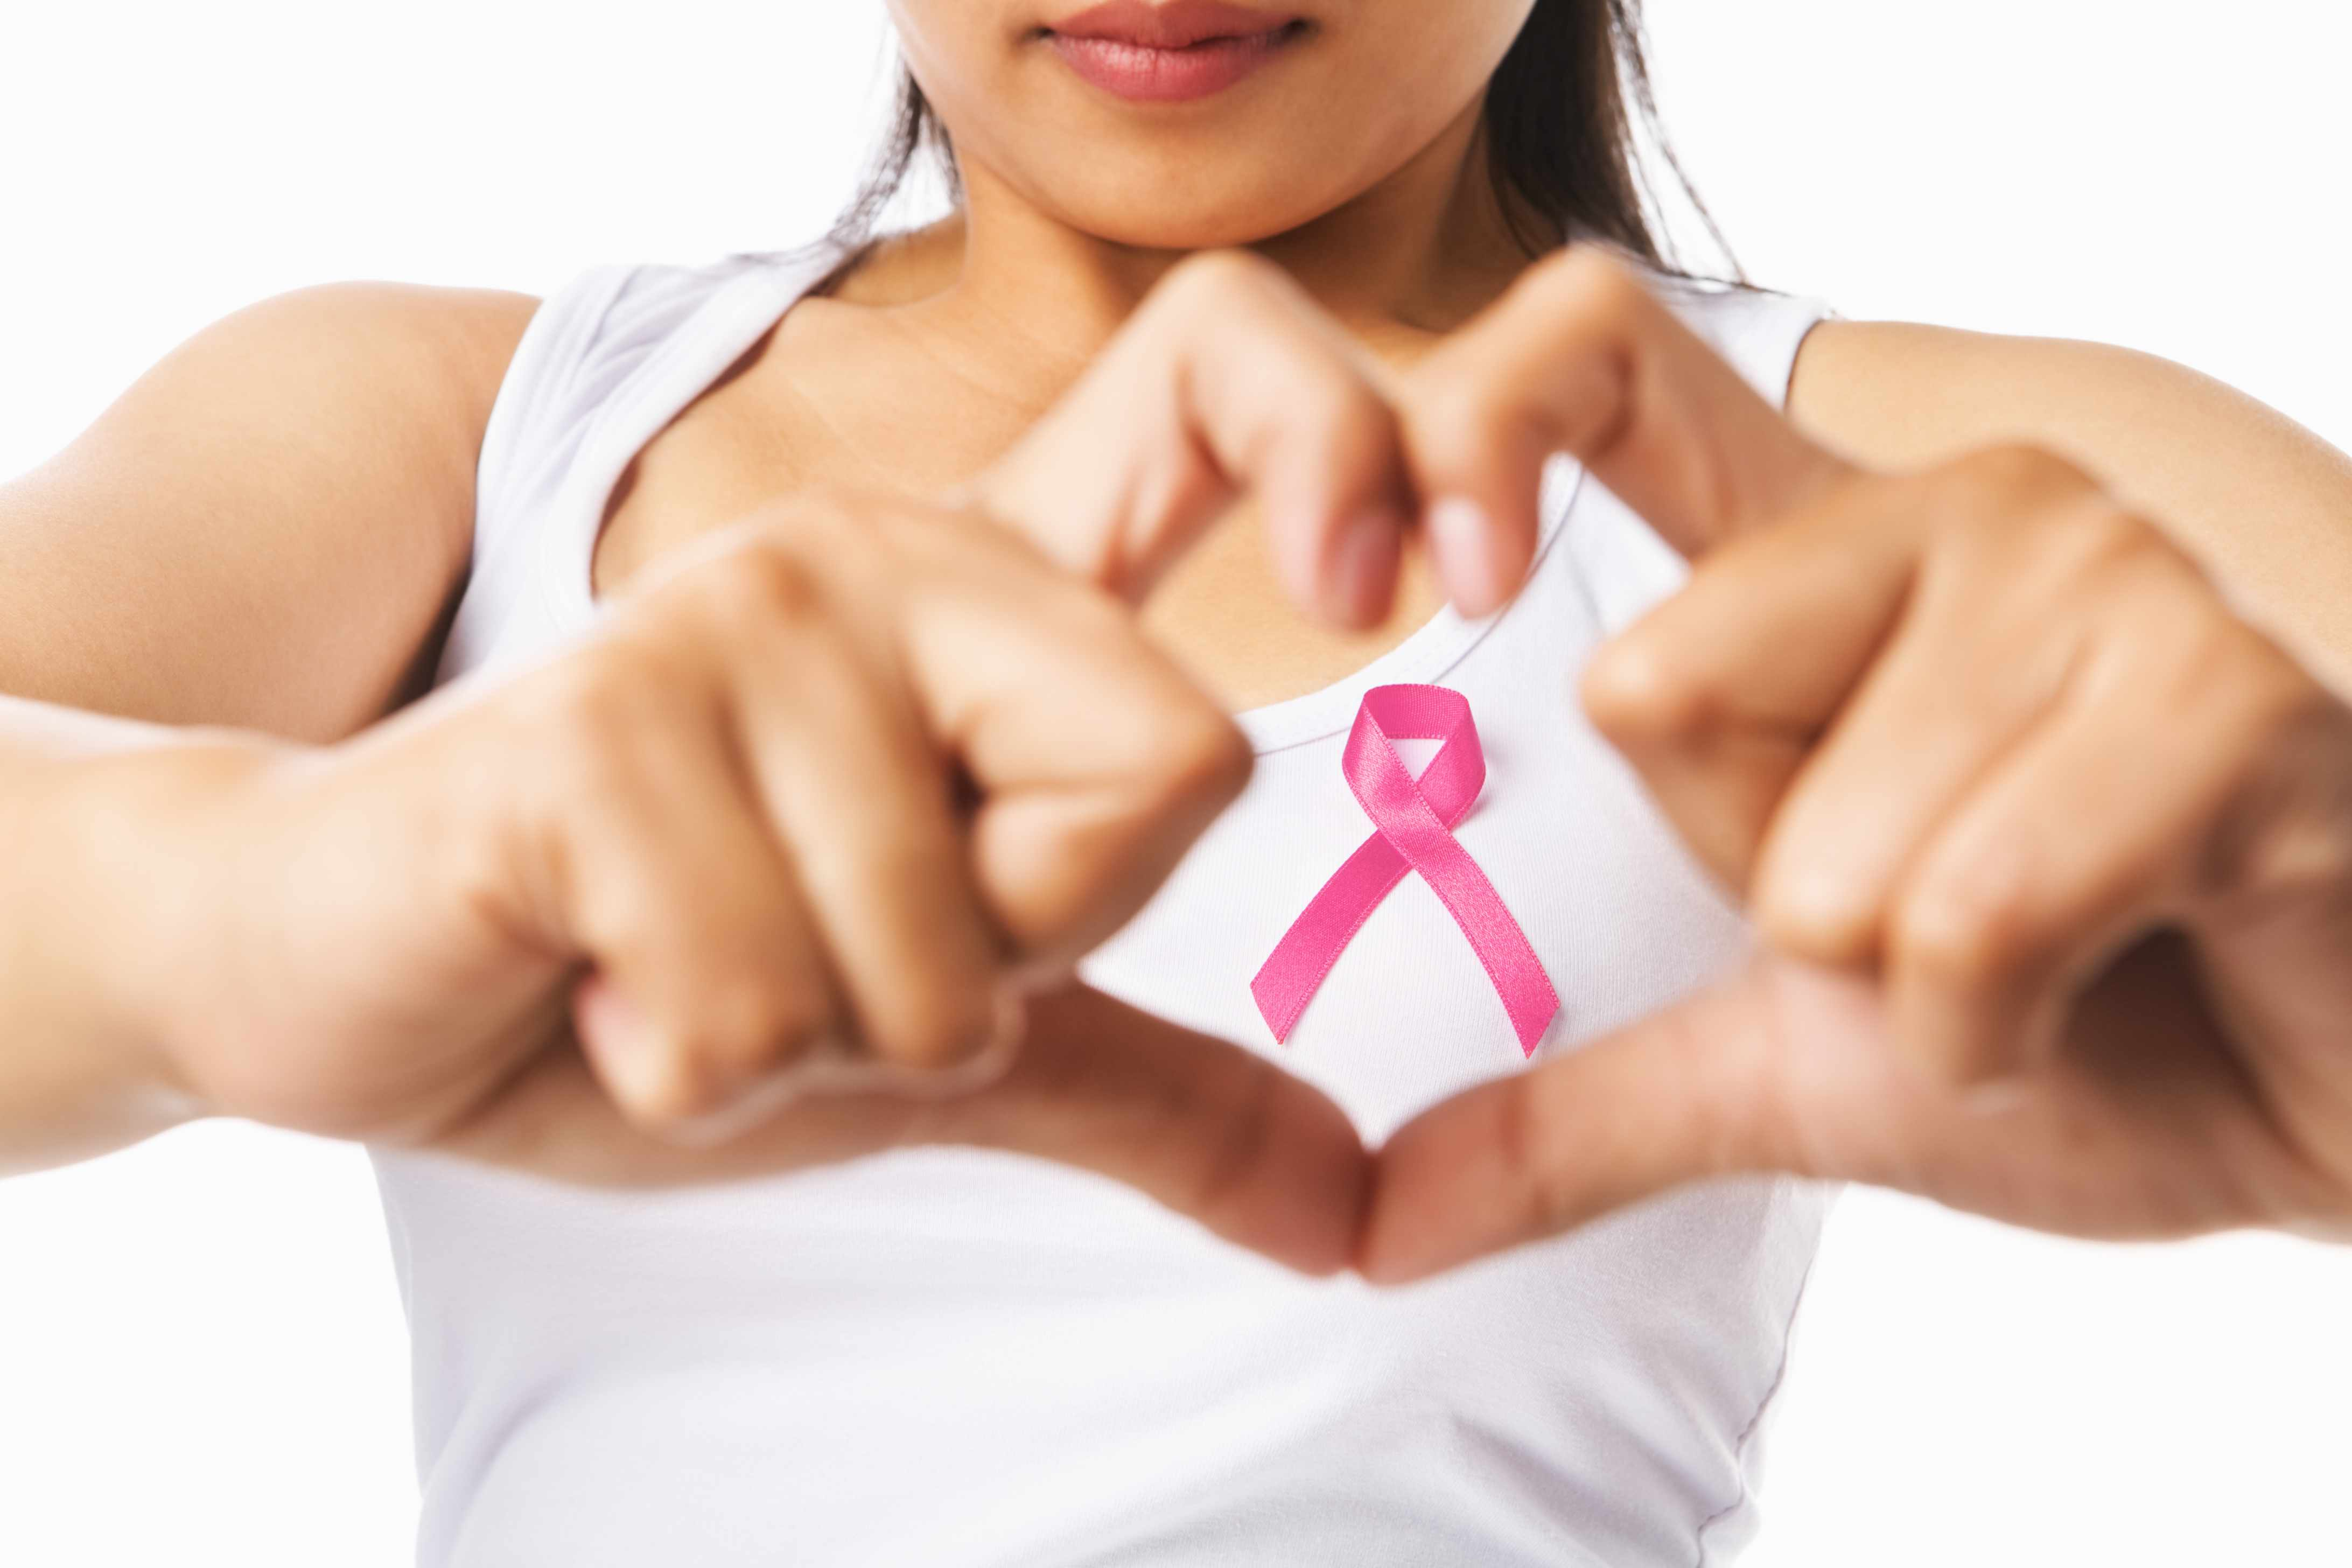 woman in tshirt making heart symbol with hands and pink ribbon, representing breast health